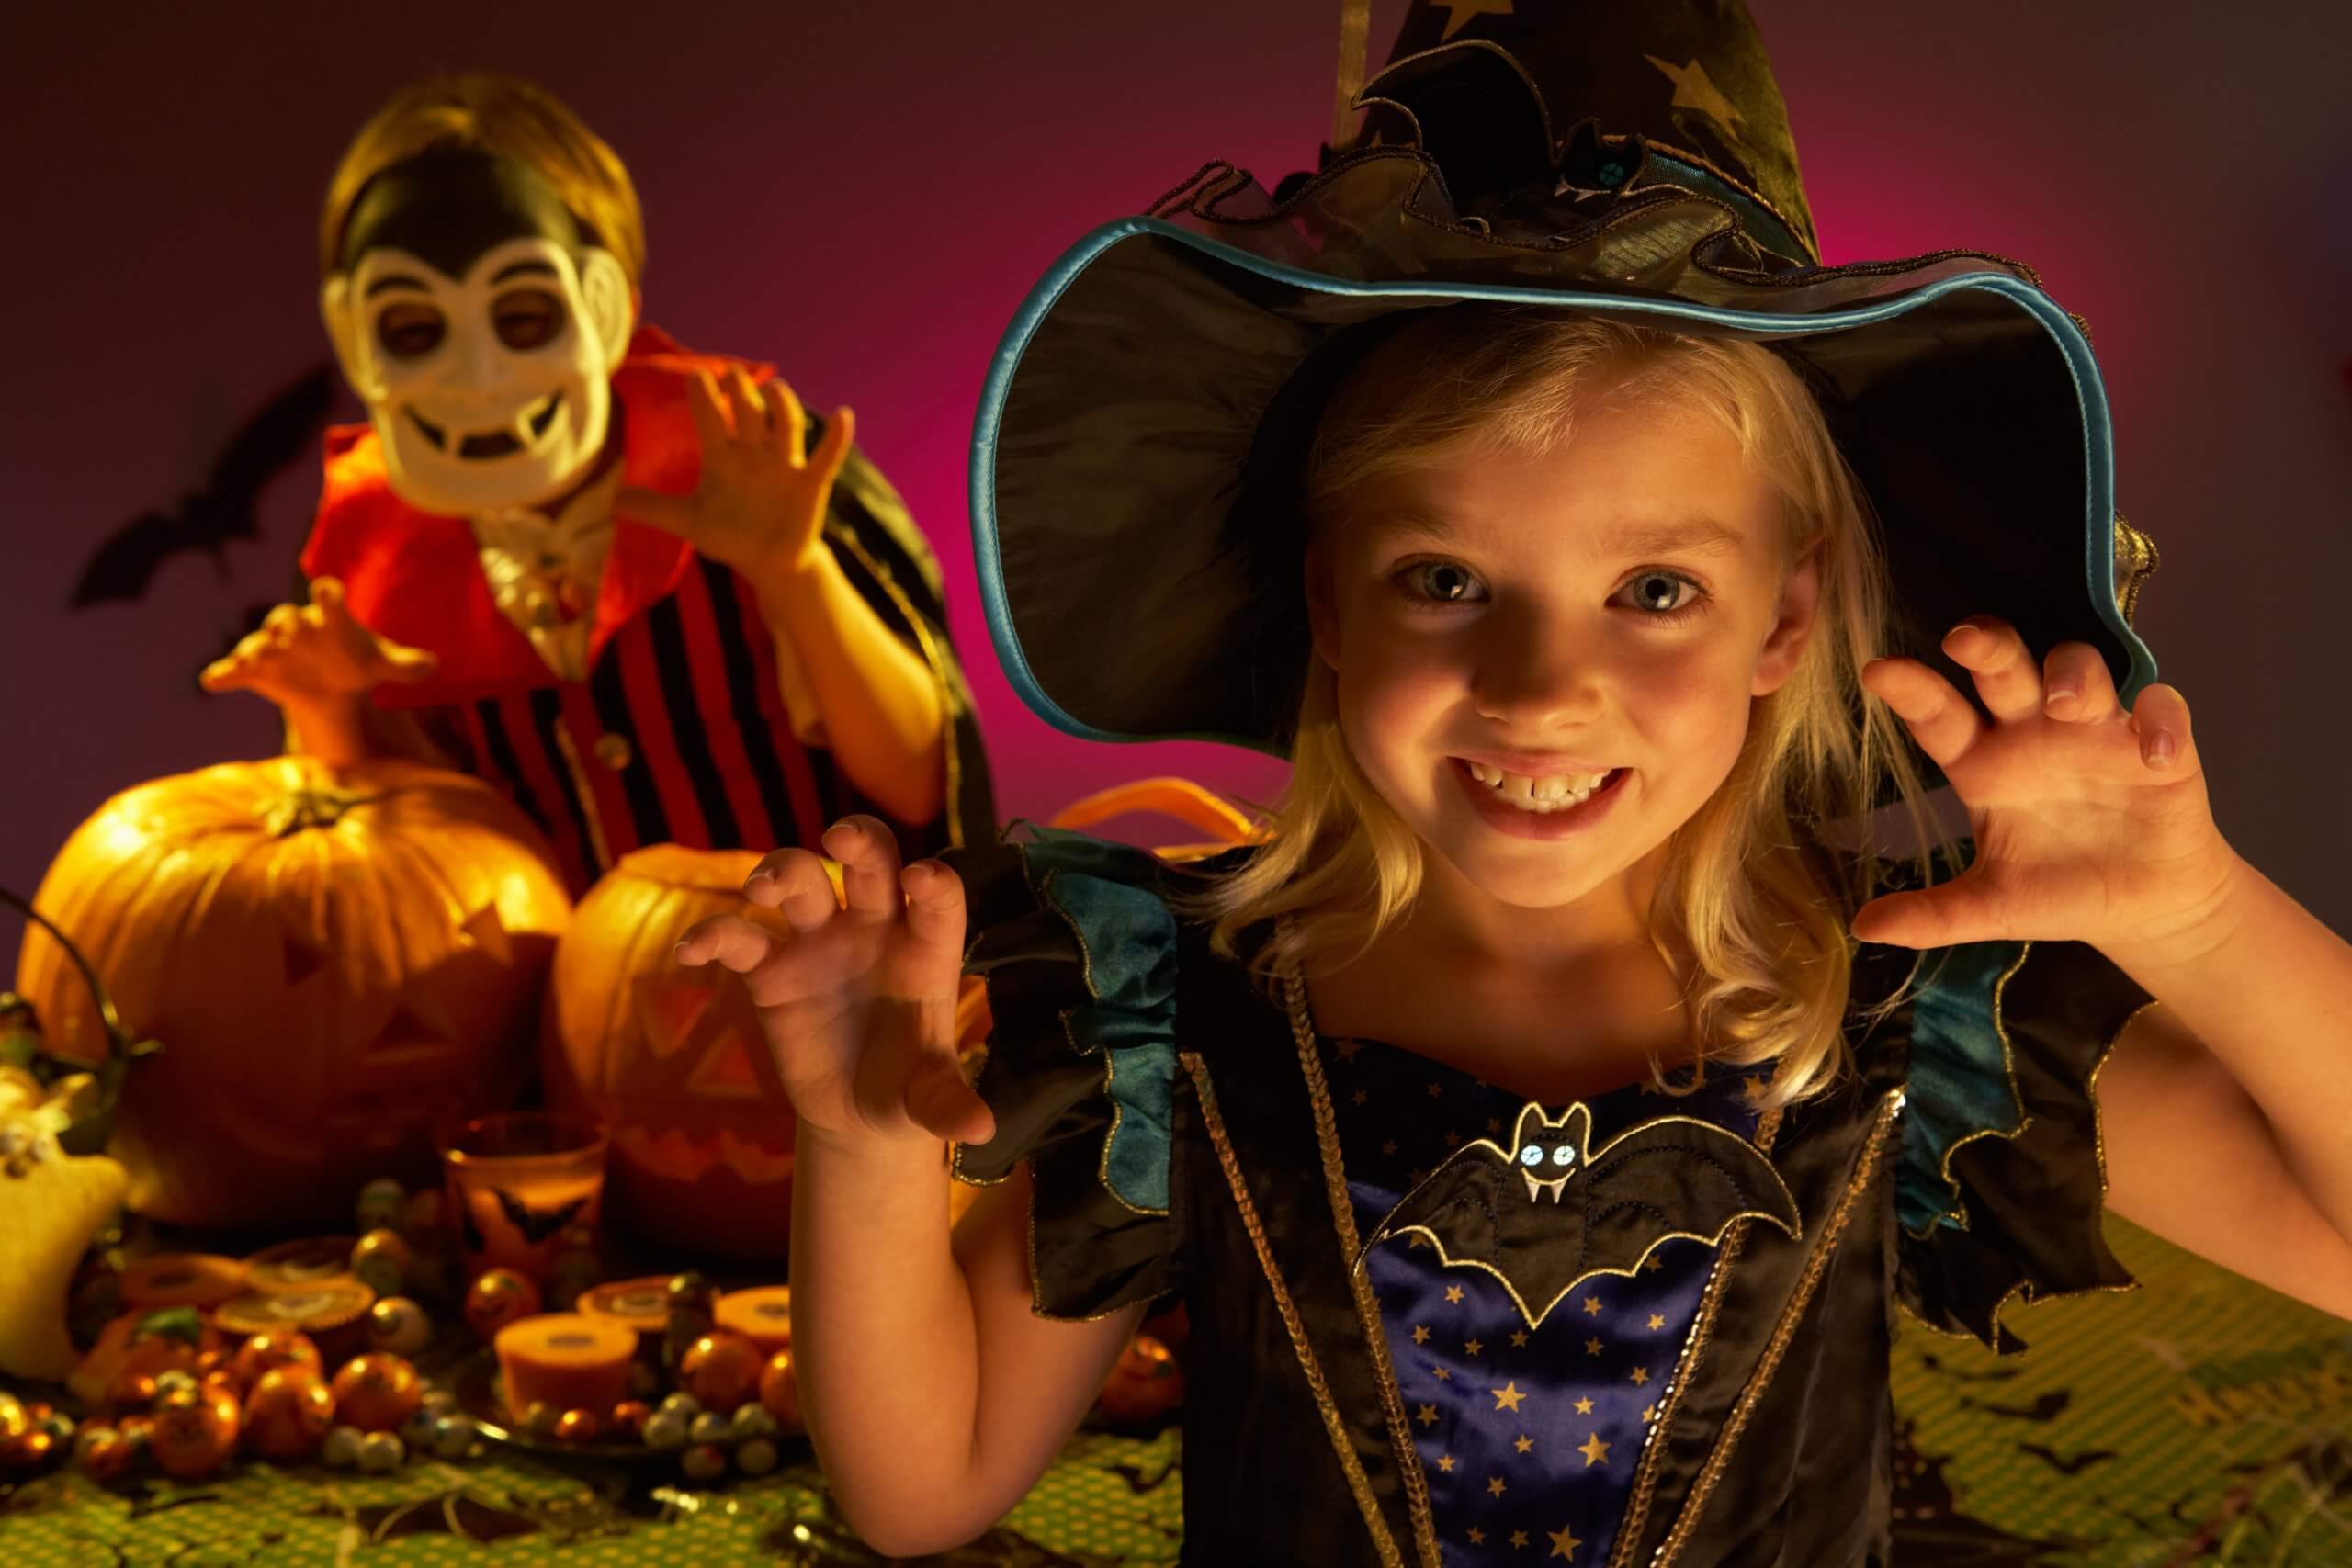 Join us this Halloween for some Spooktacular Family Fun